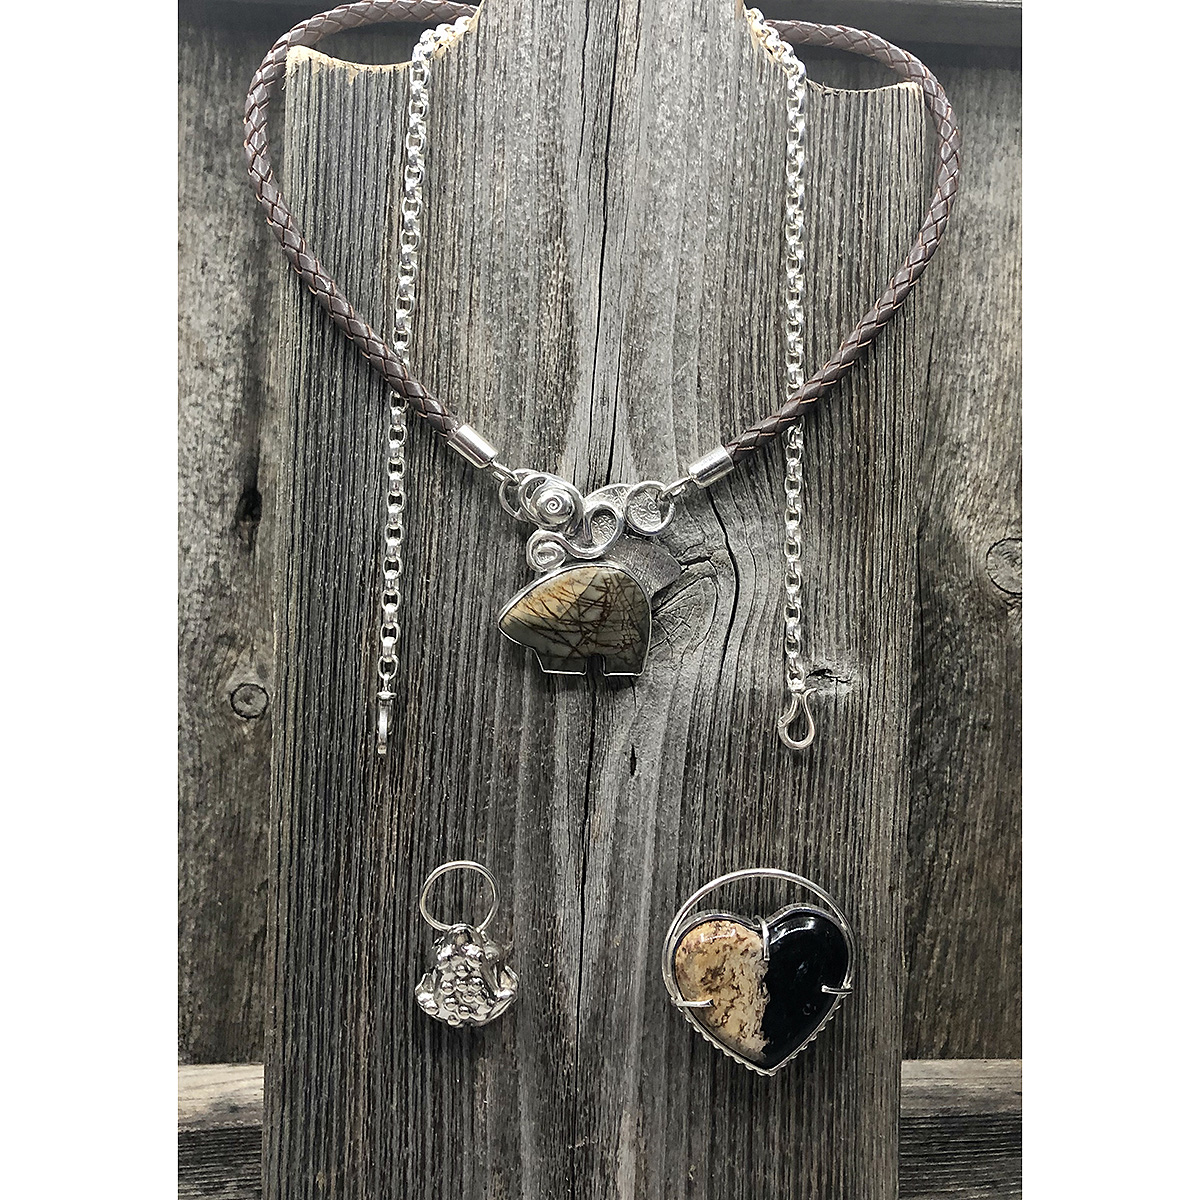 Mix and Match Pendants and Necklaces